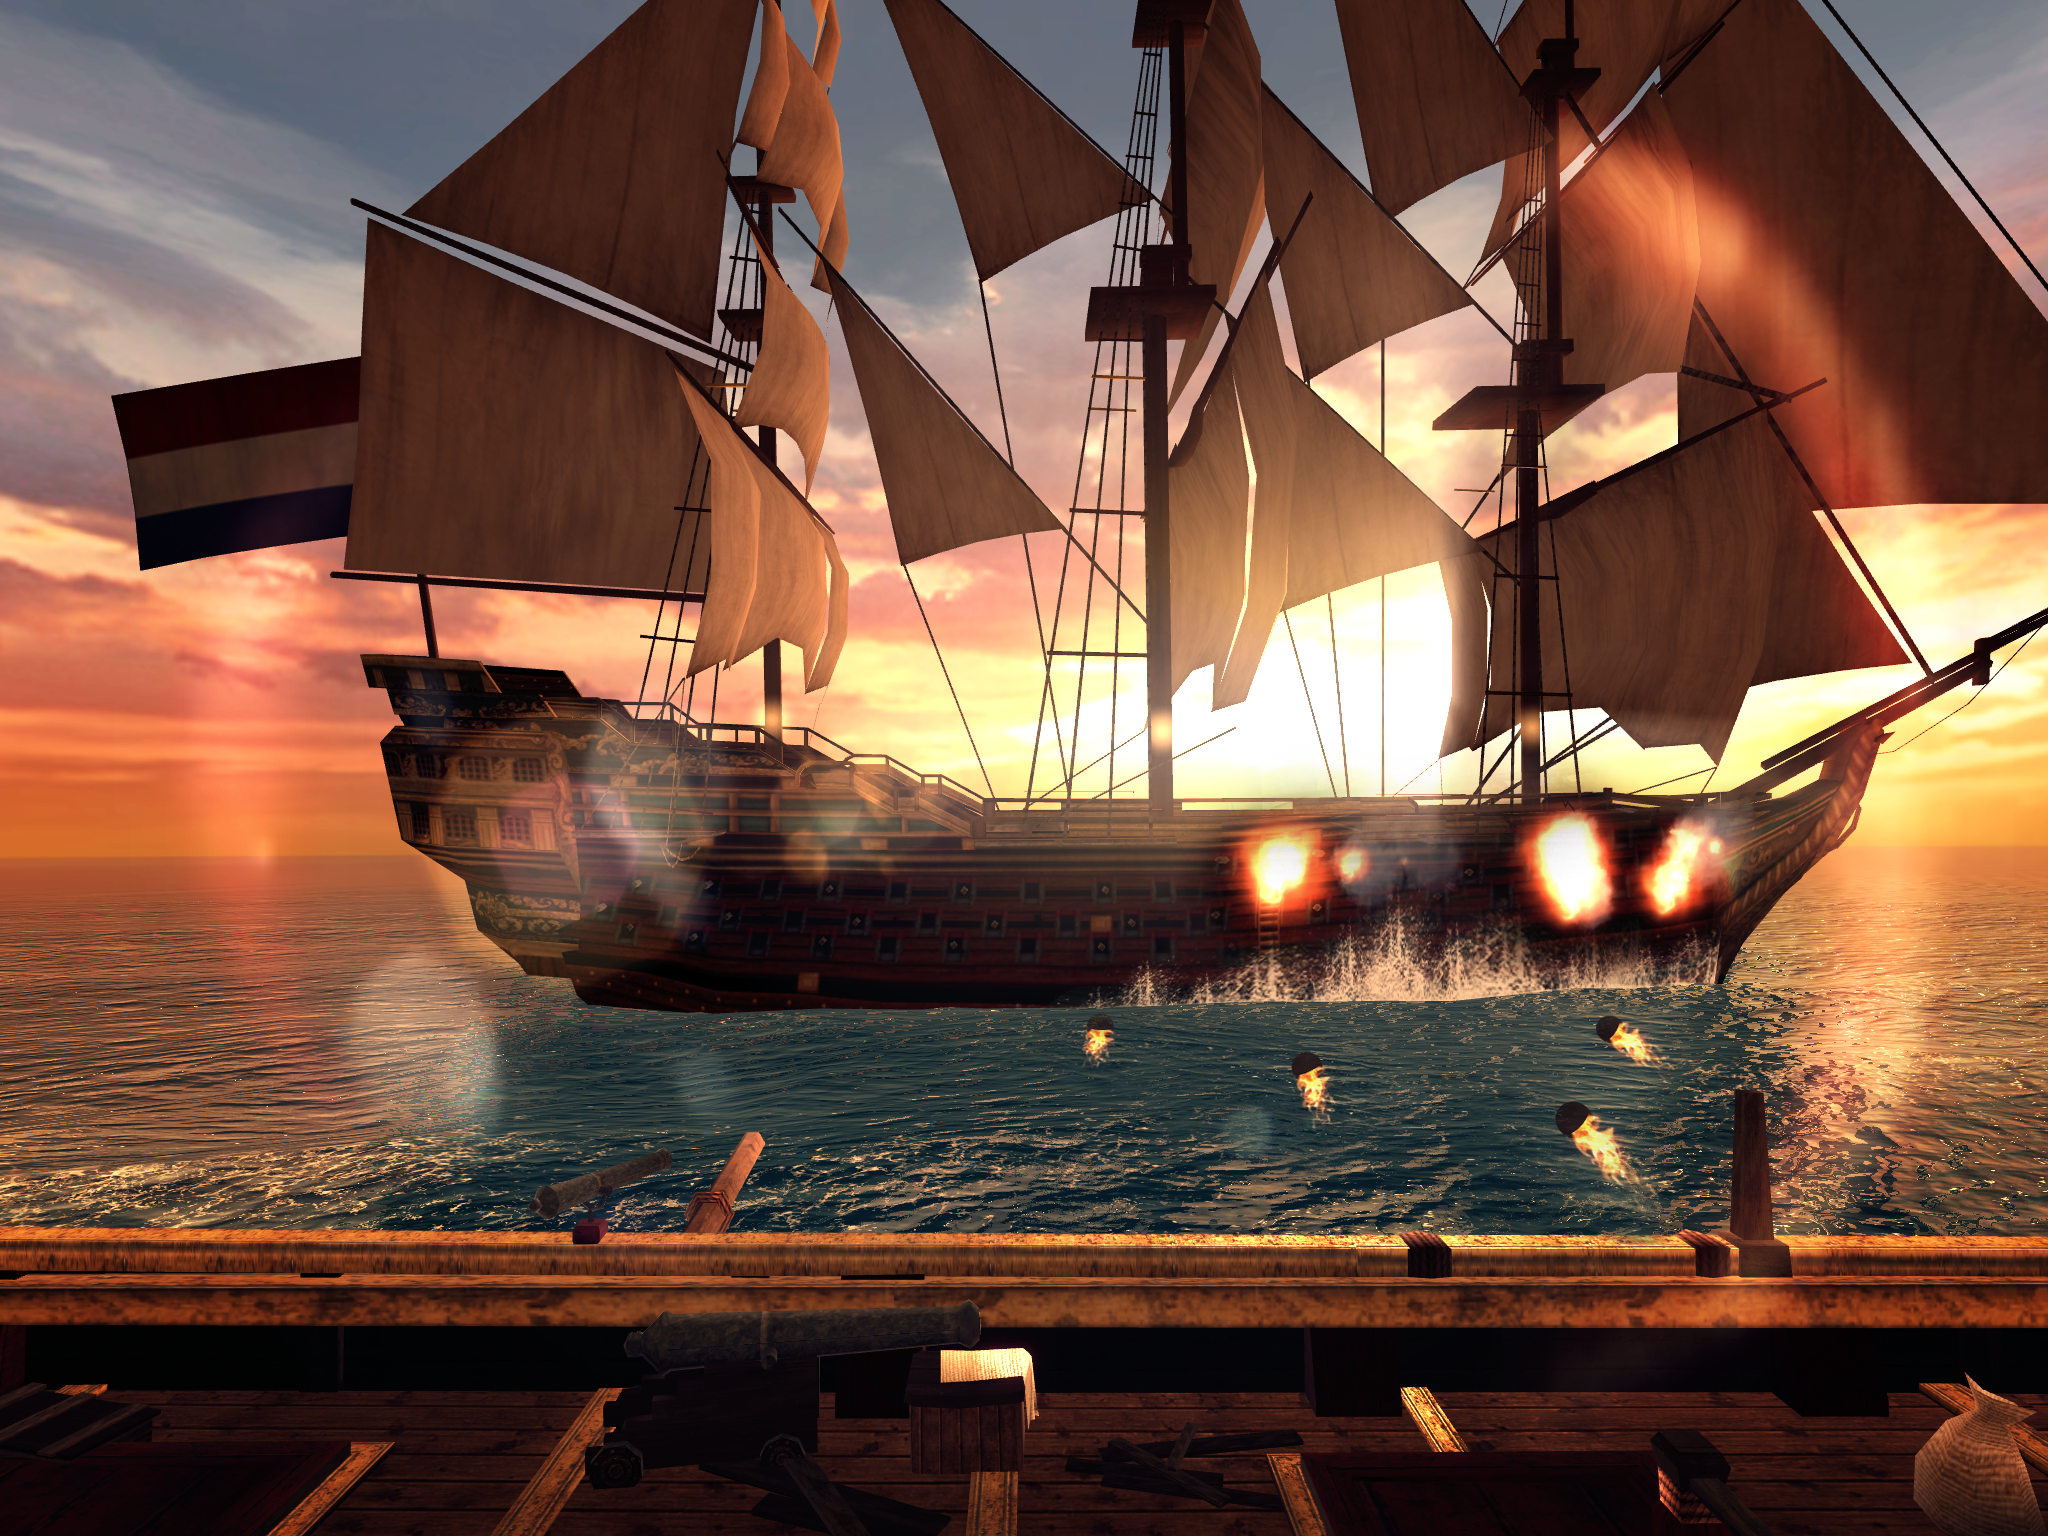 Assassin's Creed Pirates update adds Survival Missions, whale hunting, and historical ship bosses